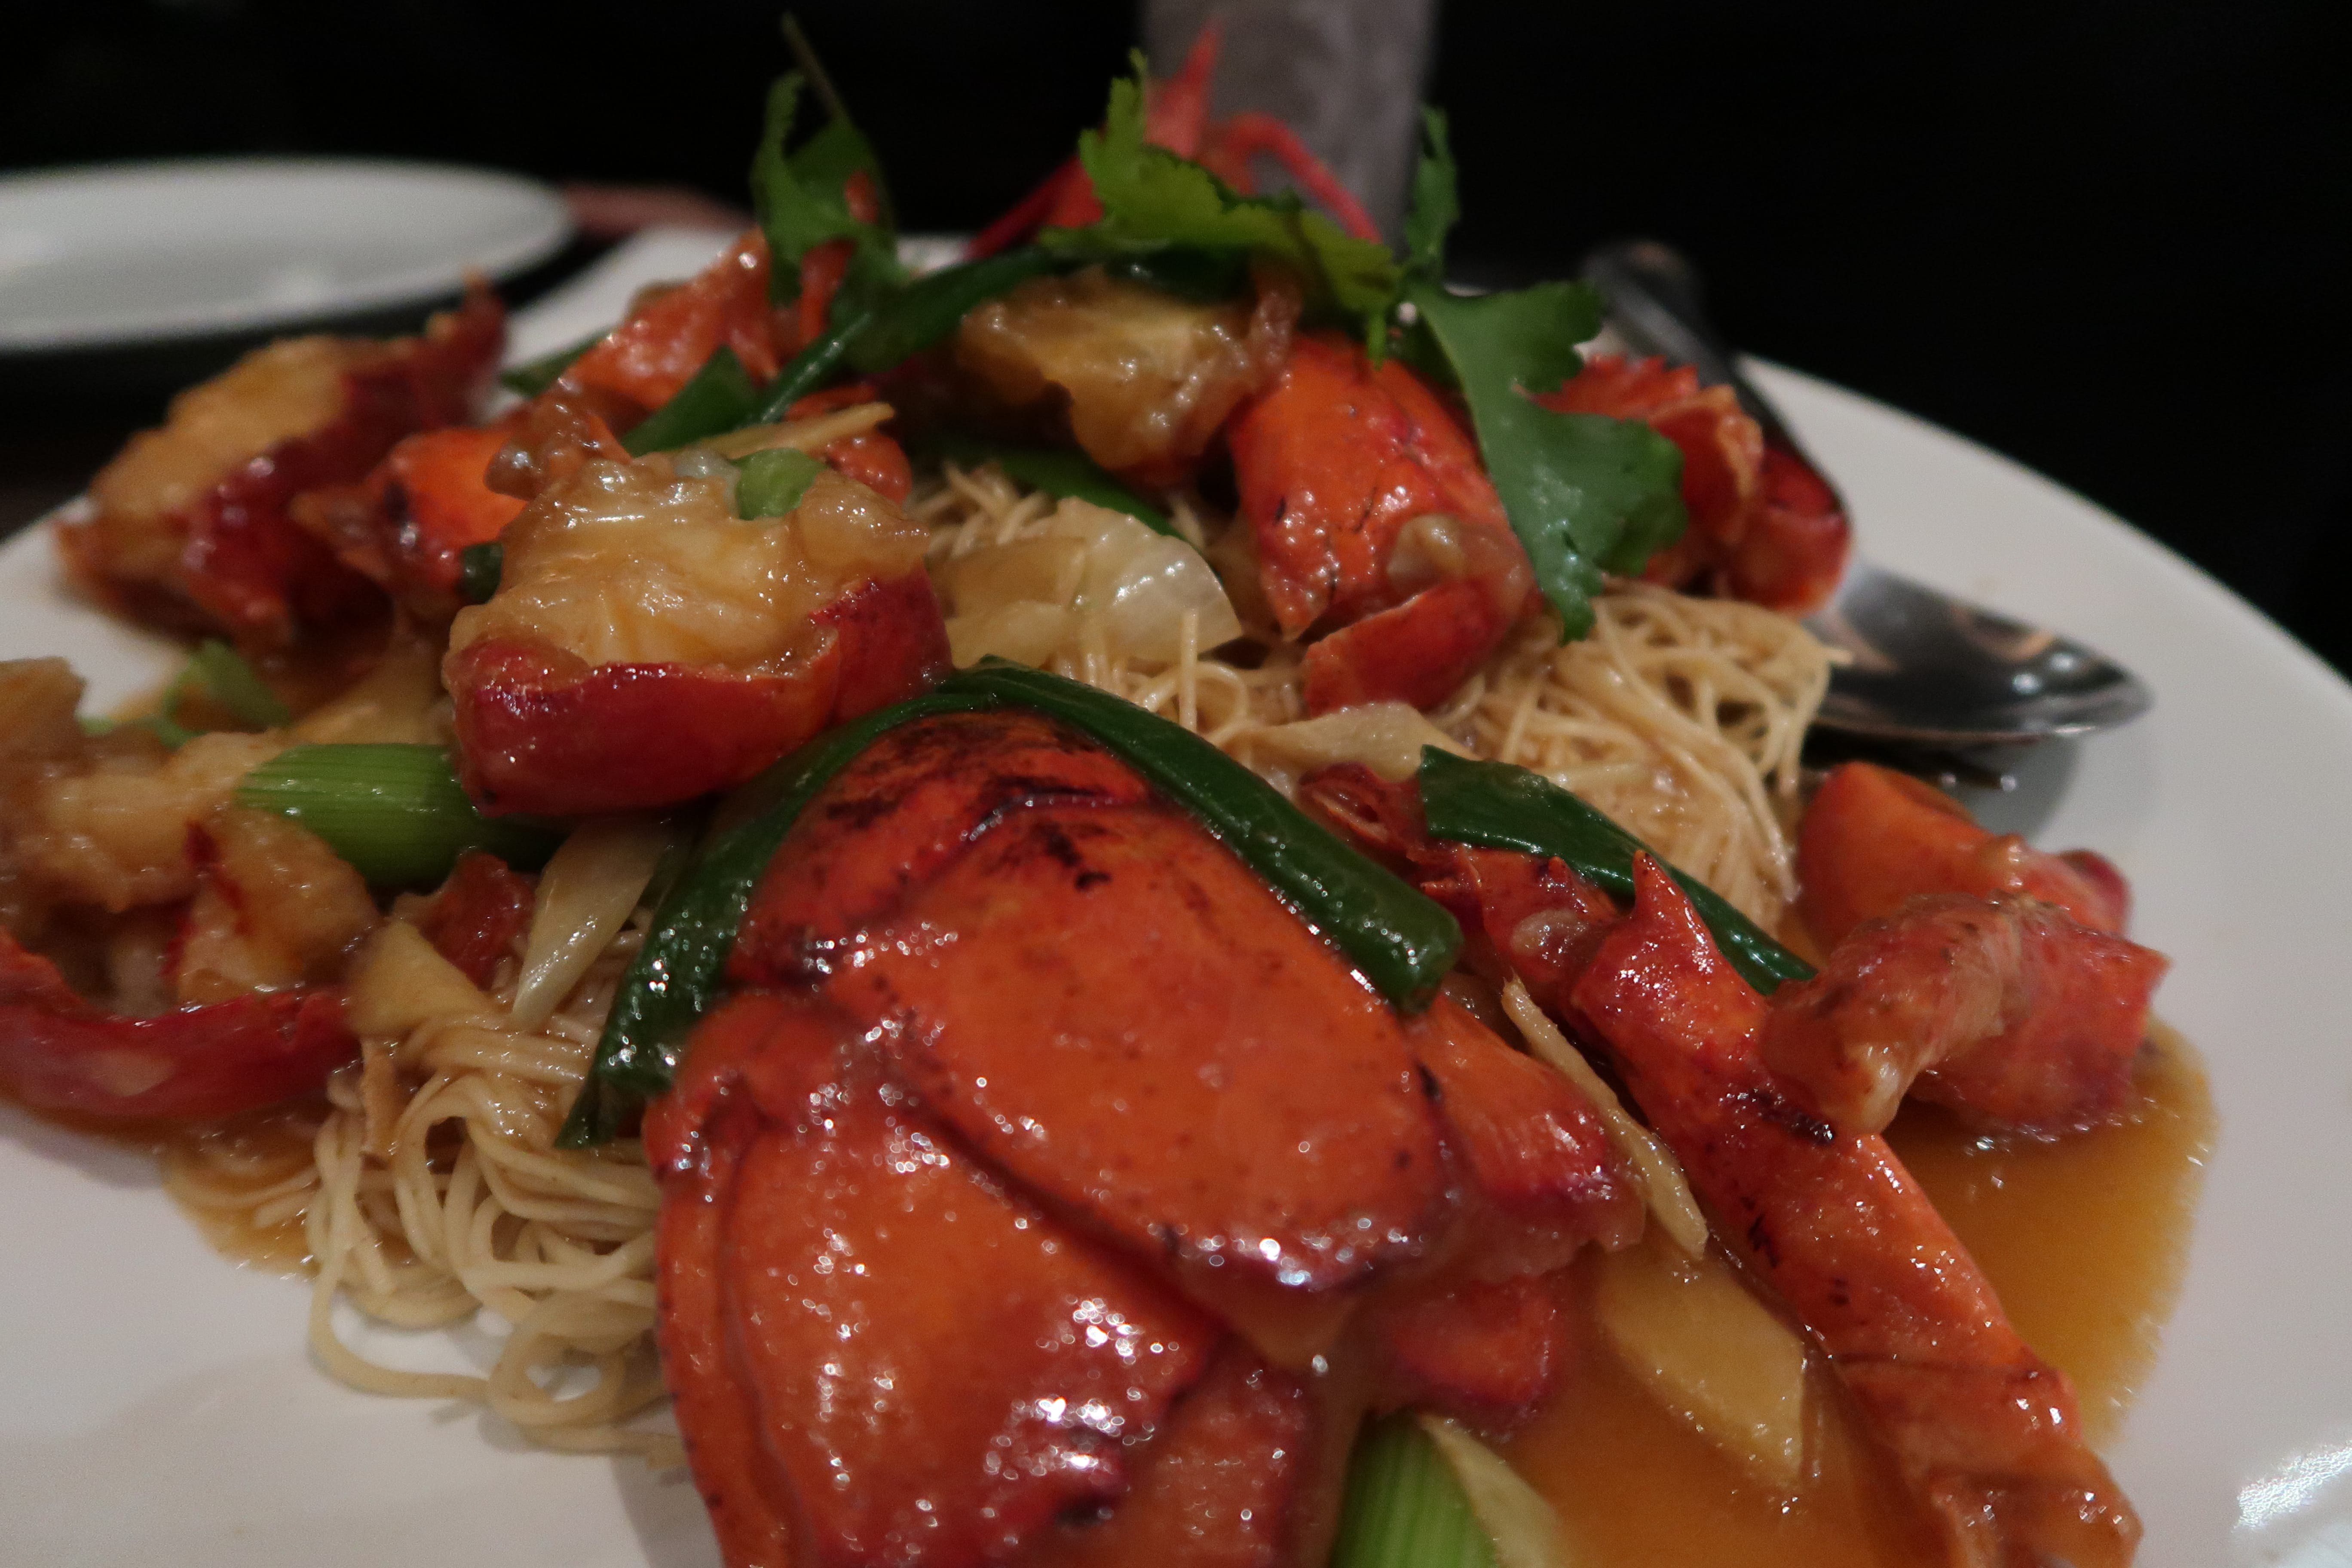 Close up of lobster served on a bed of noodles